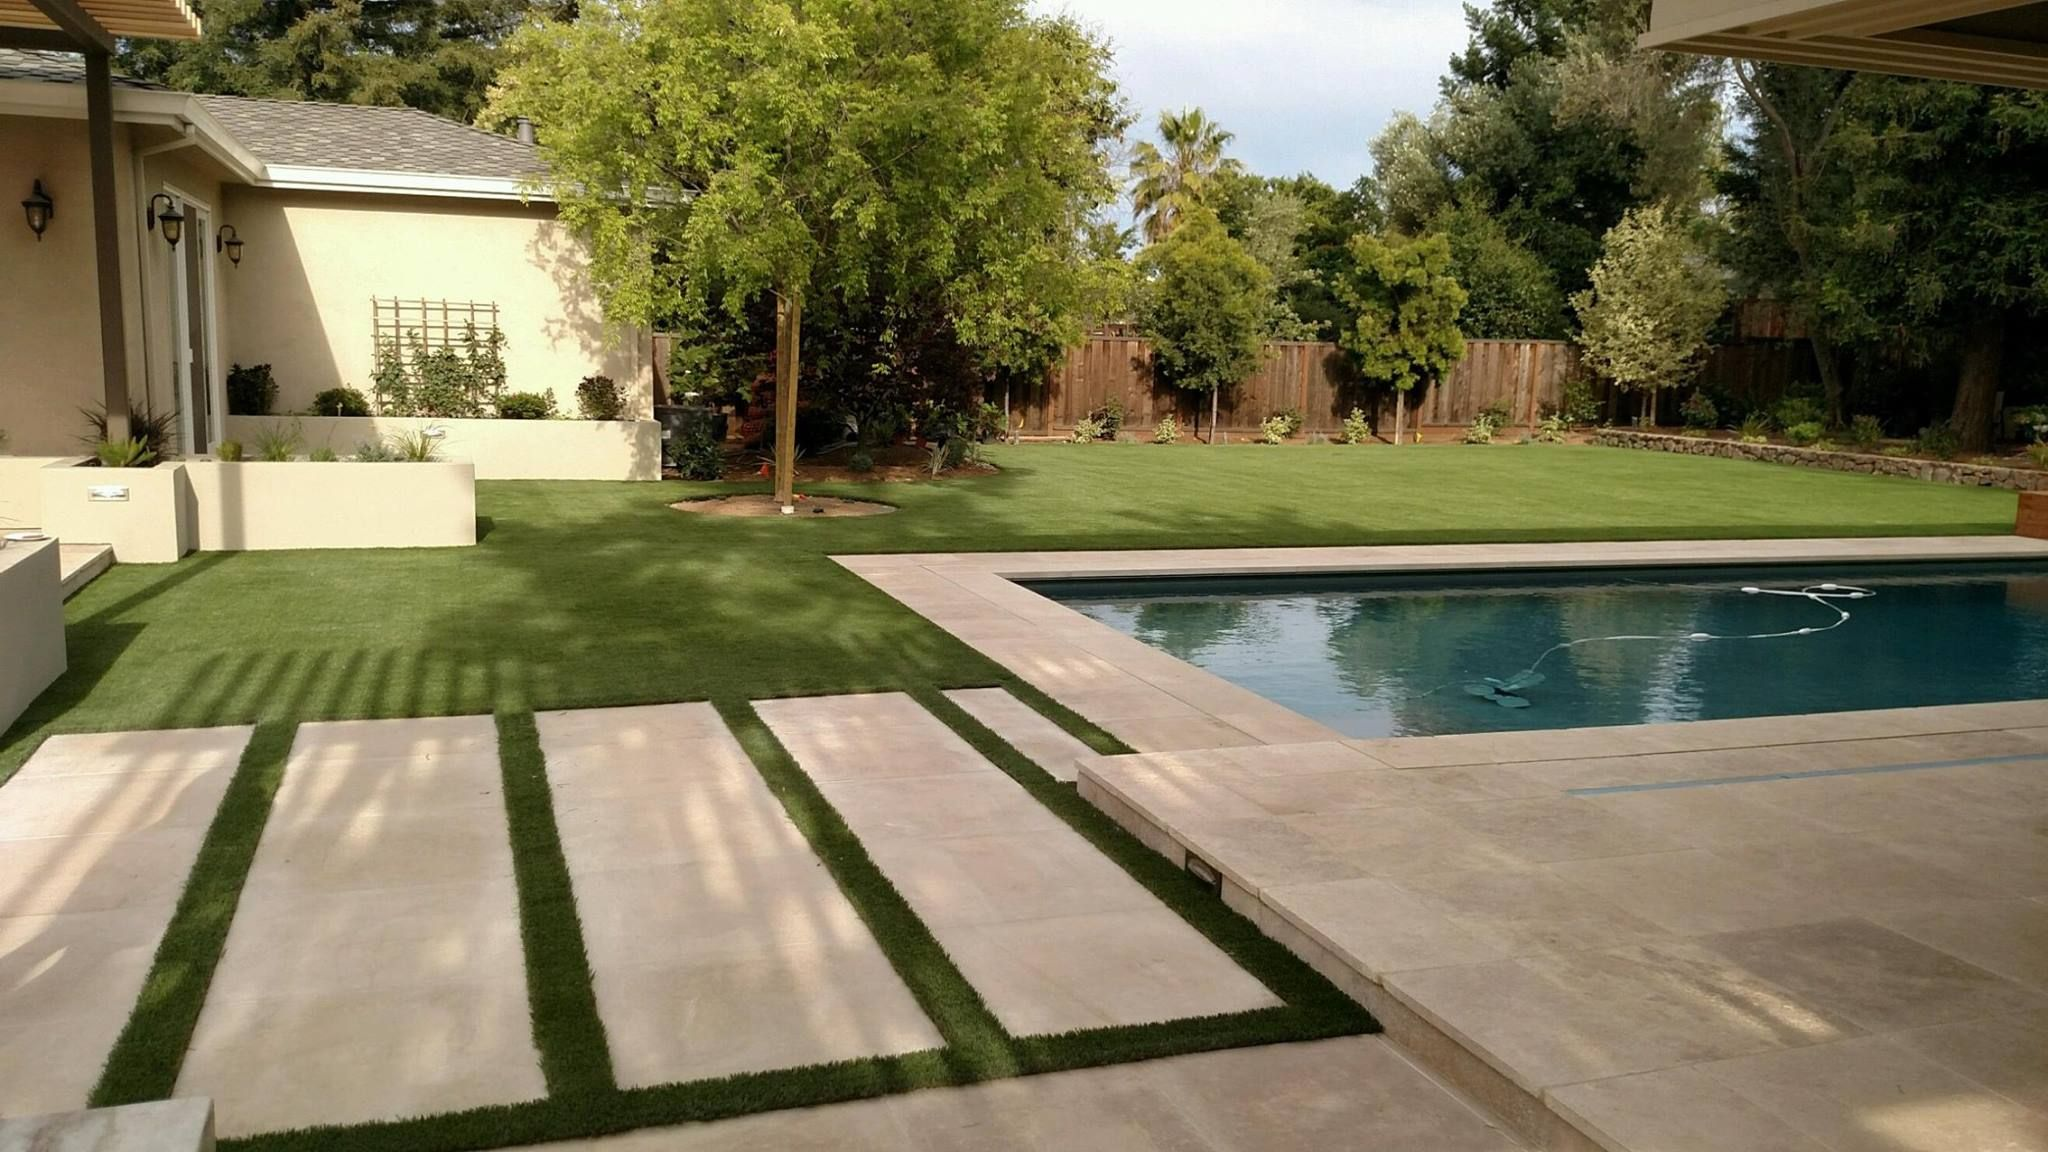 Modern California Backyard With Sleek Paving Design Synlawn Artificial Grass And Pool Paving Design California Backyard Backyard